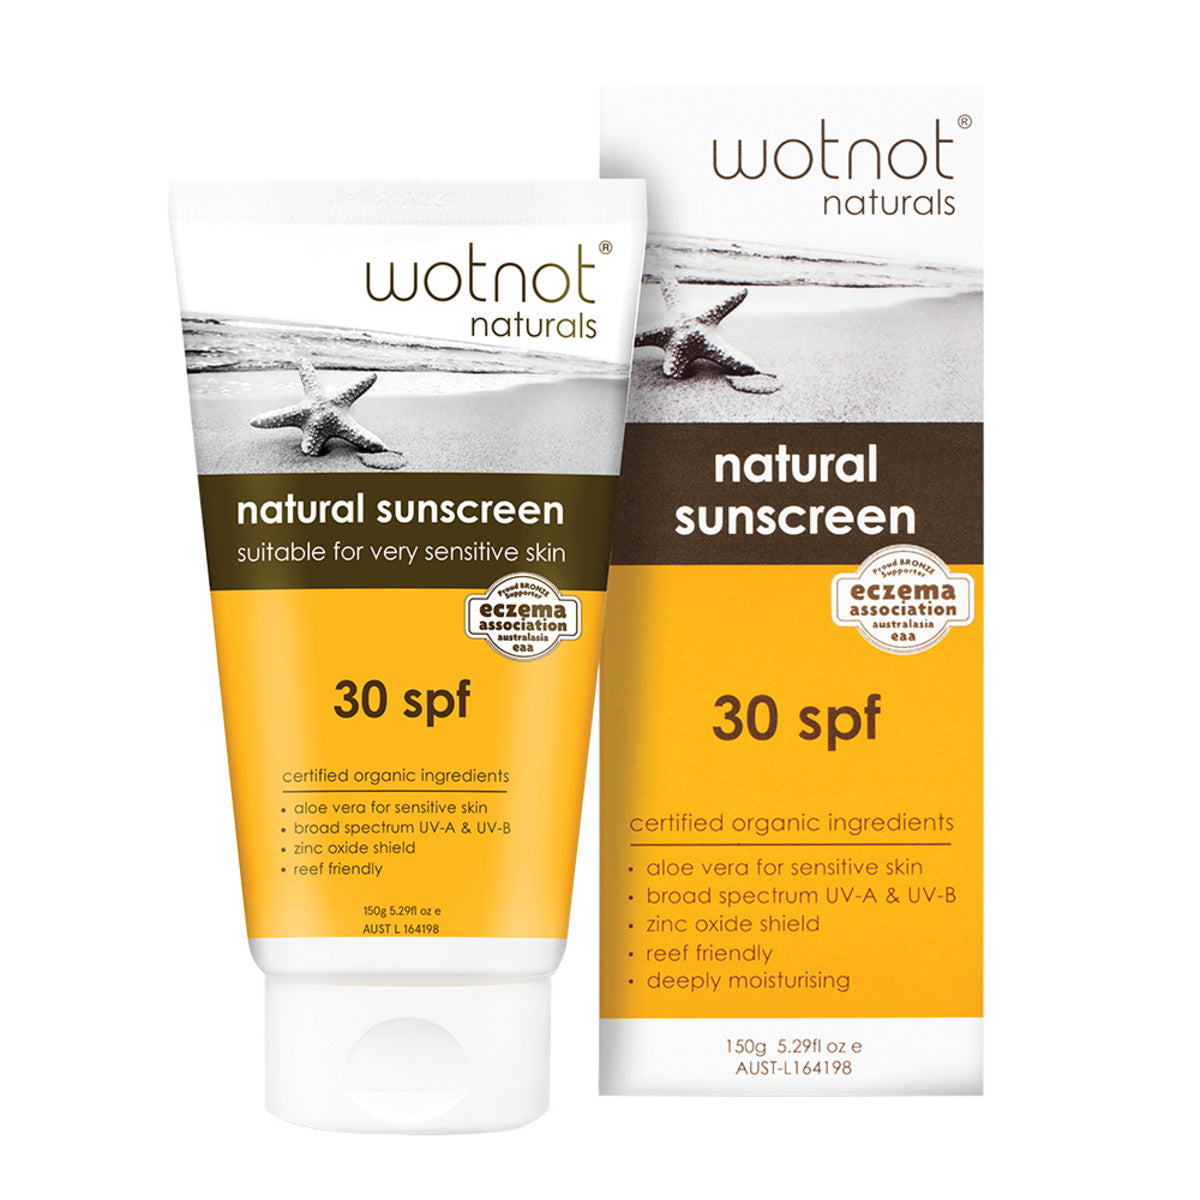 Wotnot Natural Sunscreen 30 SPF - The Conscious Spender